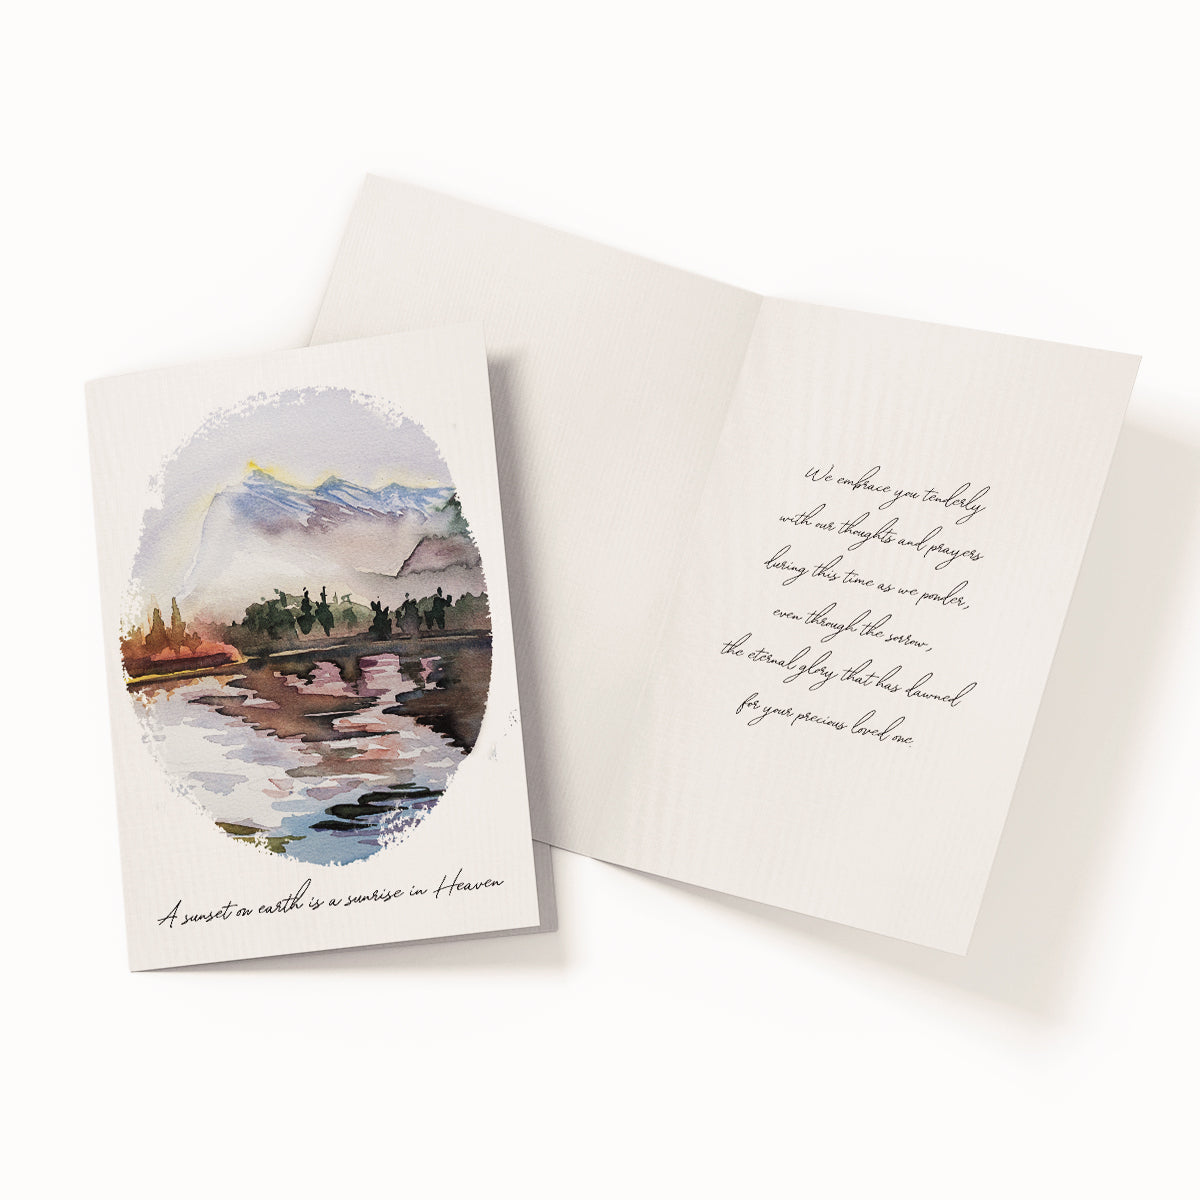 A sunset on earth is a sunrise in Heaven - Greeting Card